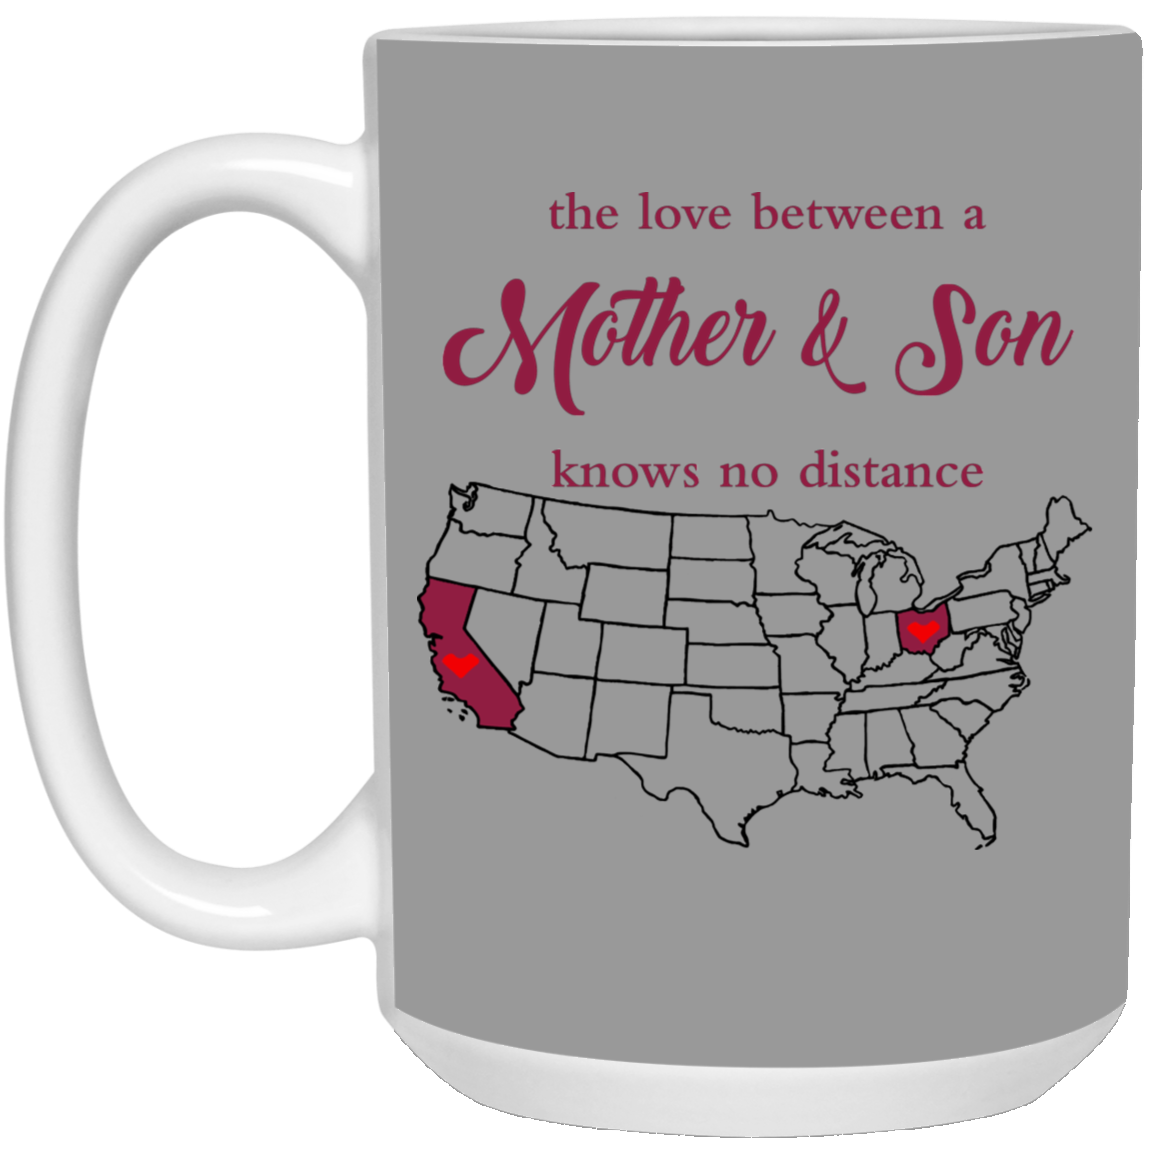 OHIO CALIFORNIA THE LOVE MOTHER AND SON